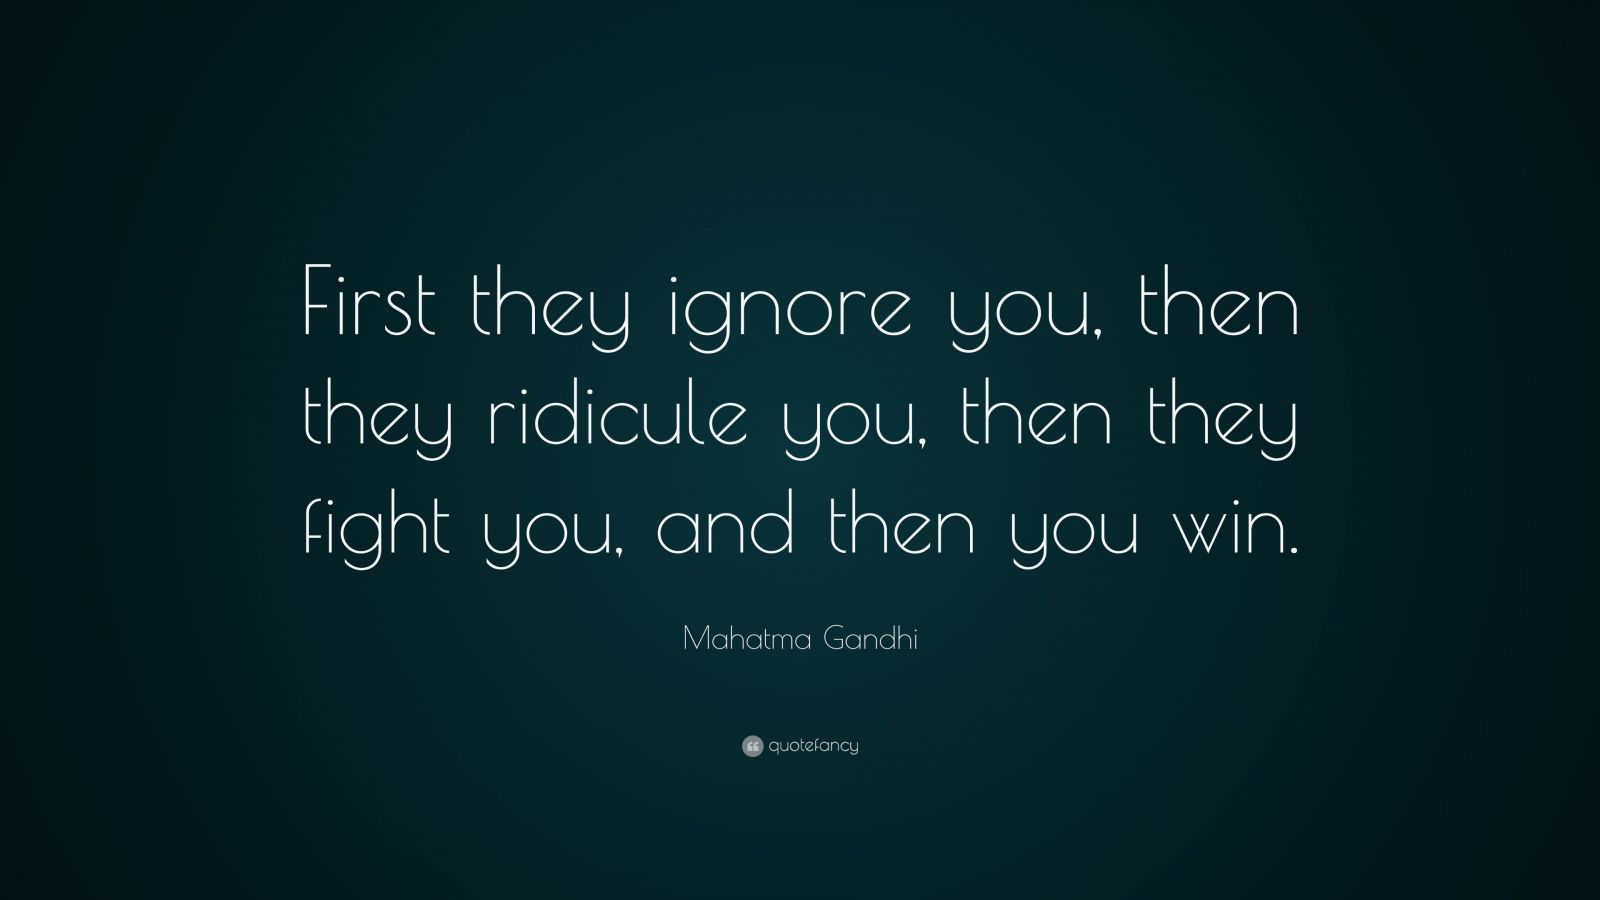 Mahatma Gandhi Quote First They Ignore You Then They Ridicule You Then They Inspiring Quotes About Life Best Inspirational Quotes Top Quotes Inspiration